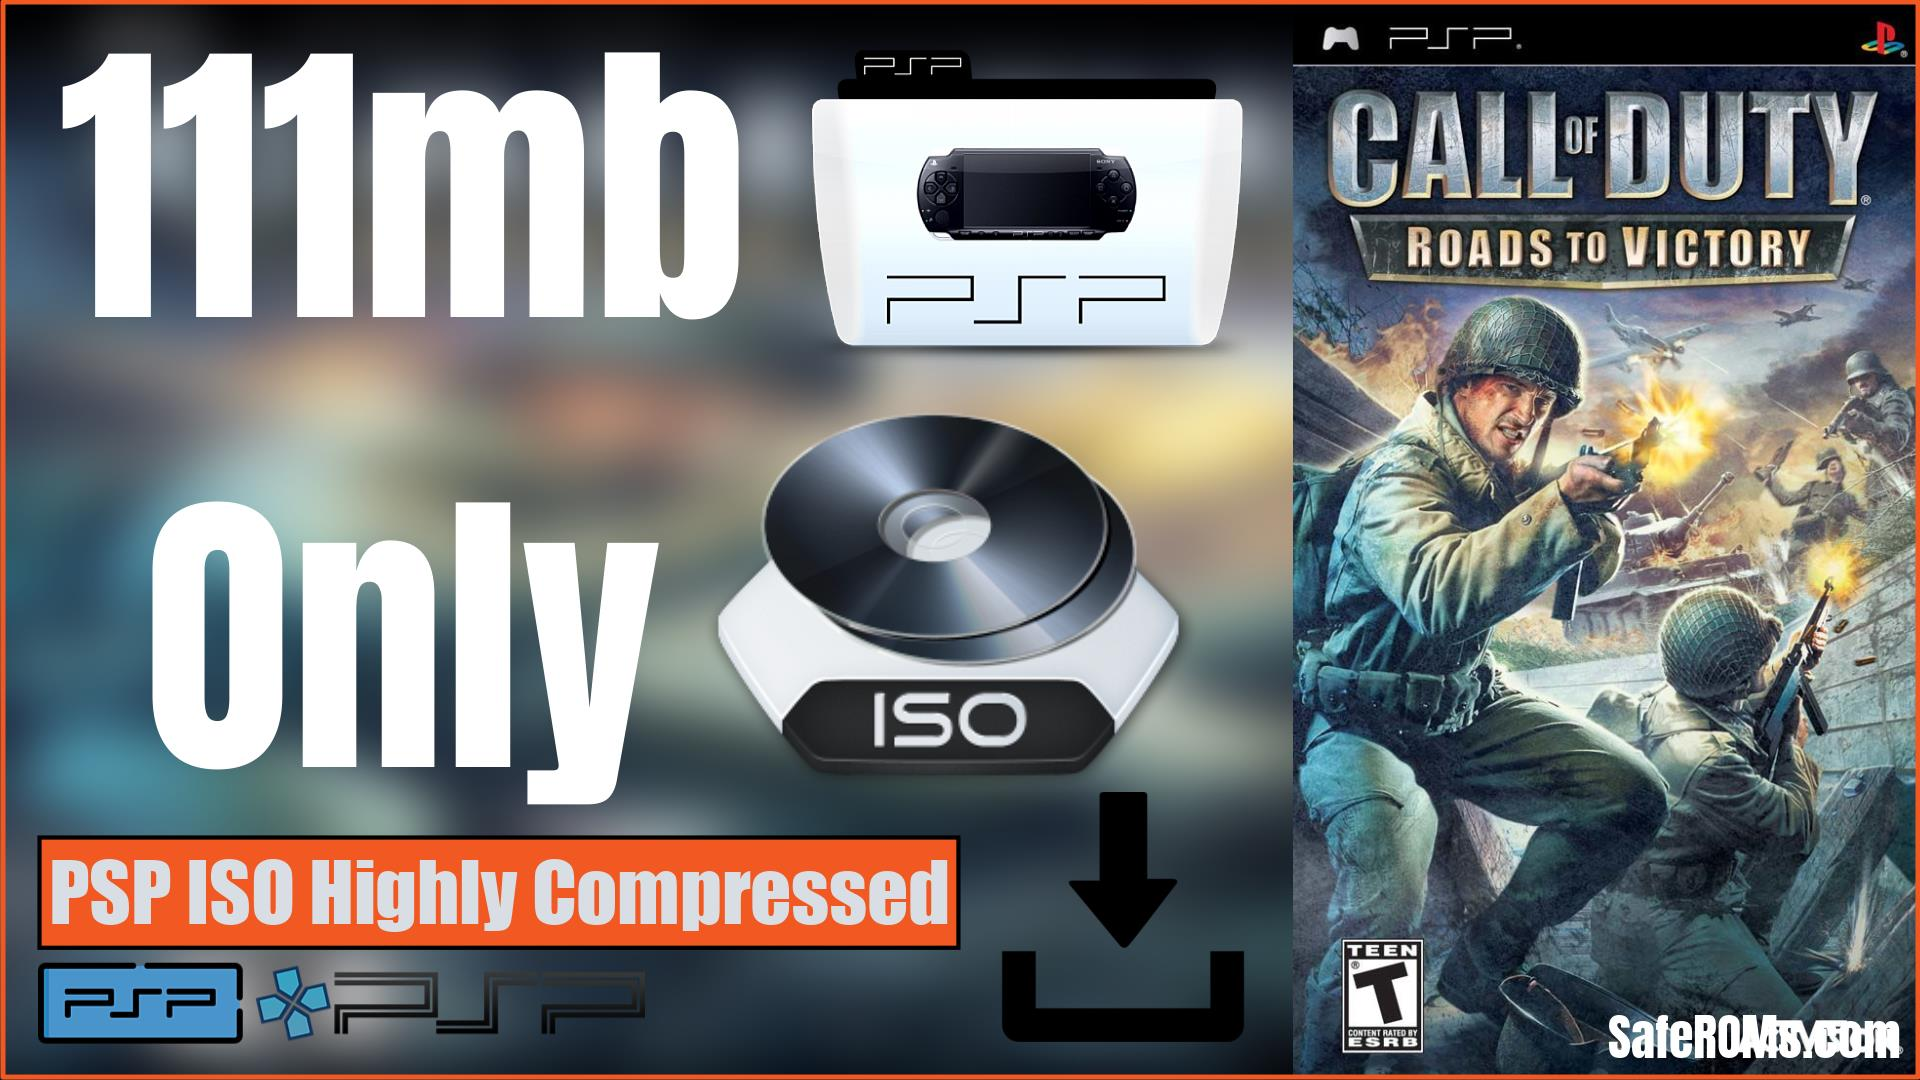 Call of Duty Roads to Victory PSP ISO Highly Compressed